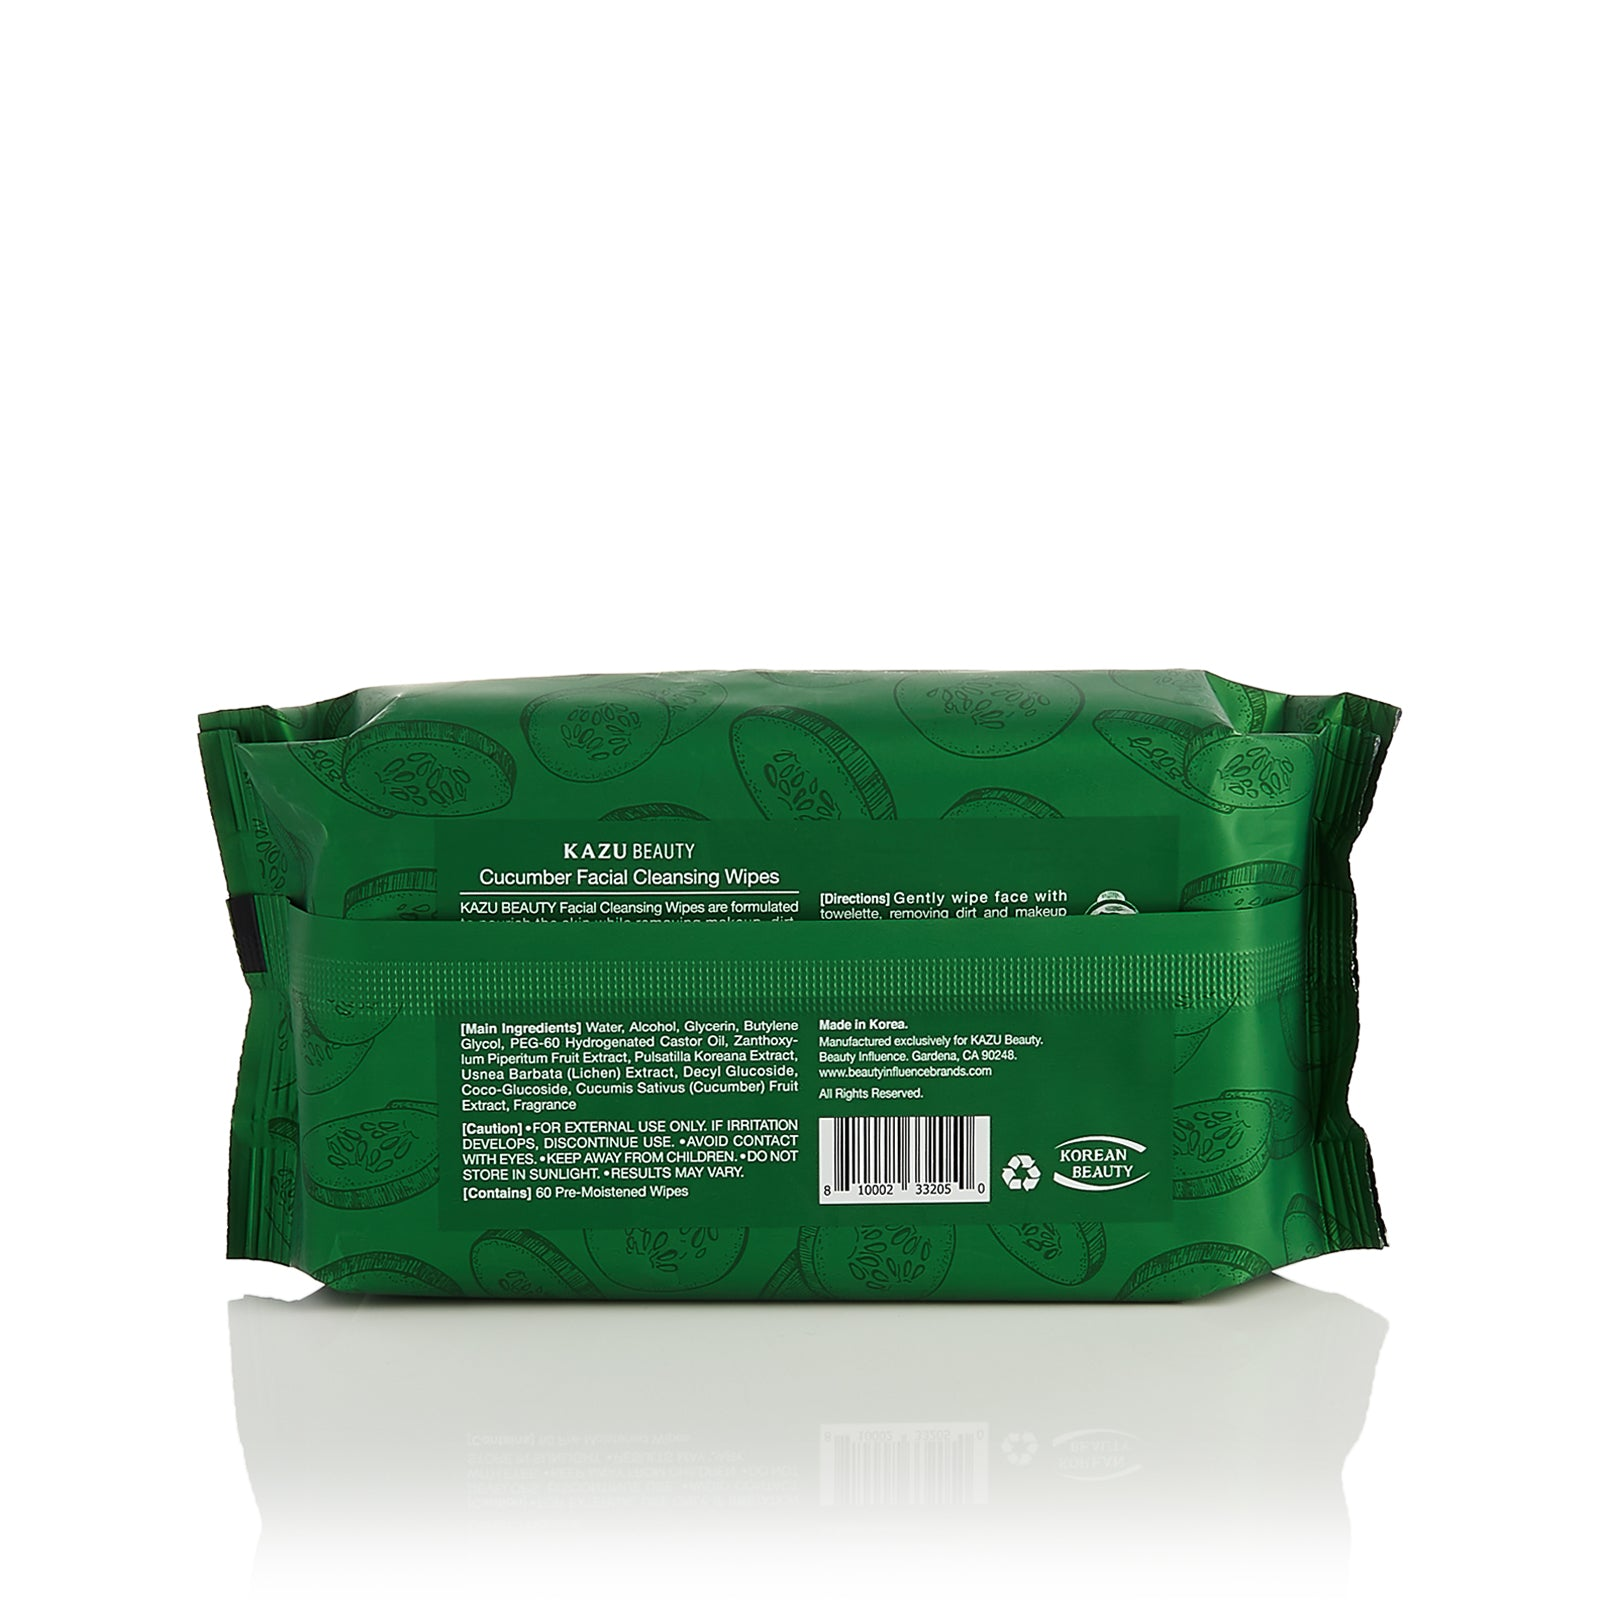 KAZU Beauty Cucumber Facial Cleansing Wipes